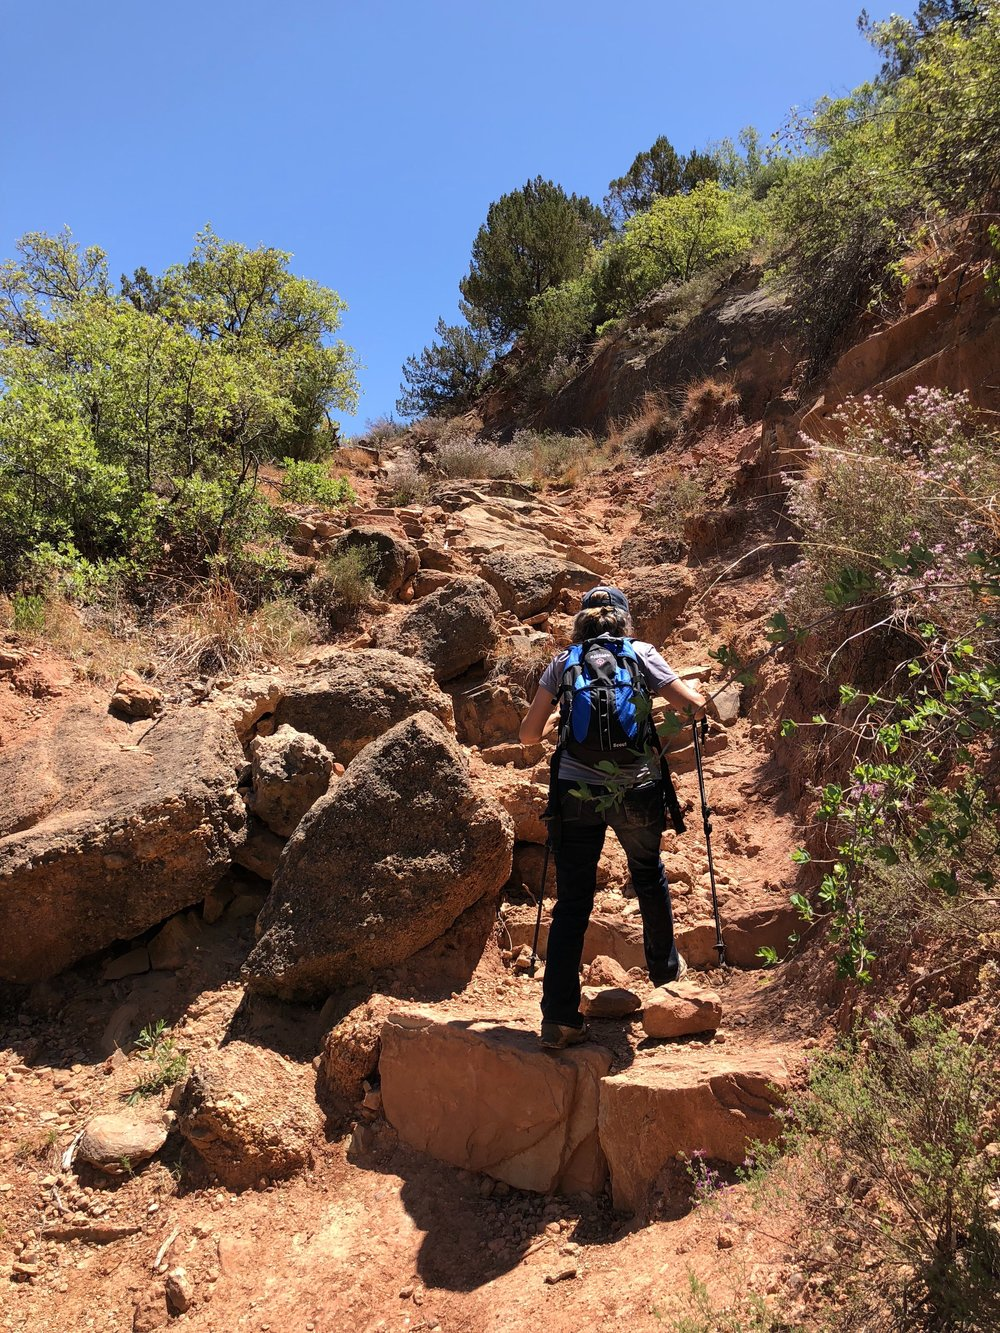 Steep incline along Upper Canyon Trail leaving Fern Cave